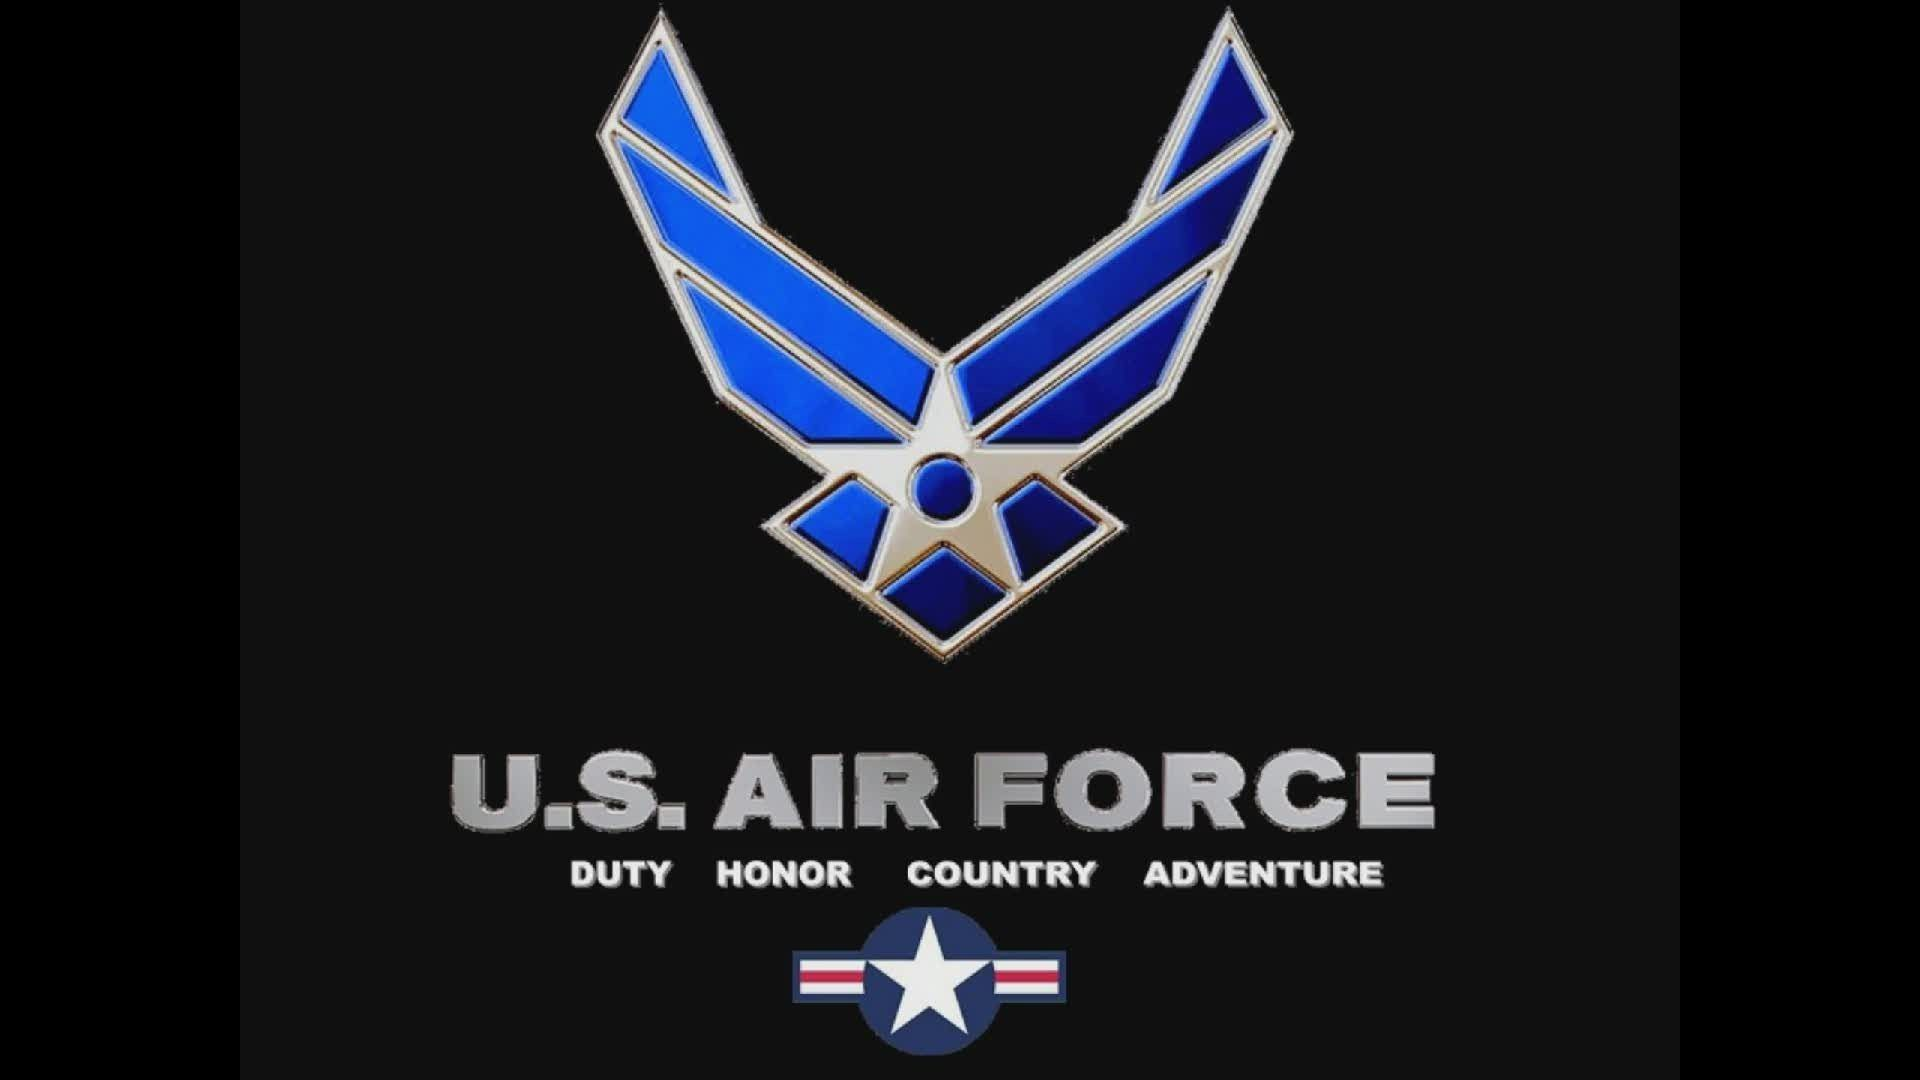 U S Air Force Wallpapers Top Free U S Air Force Backgrounds Wallpaperaccess